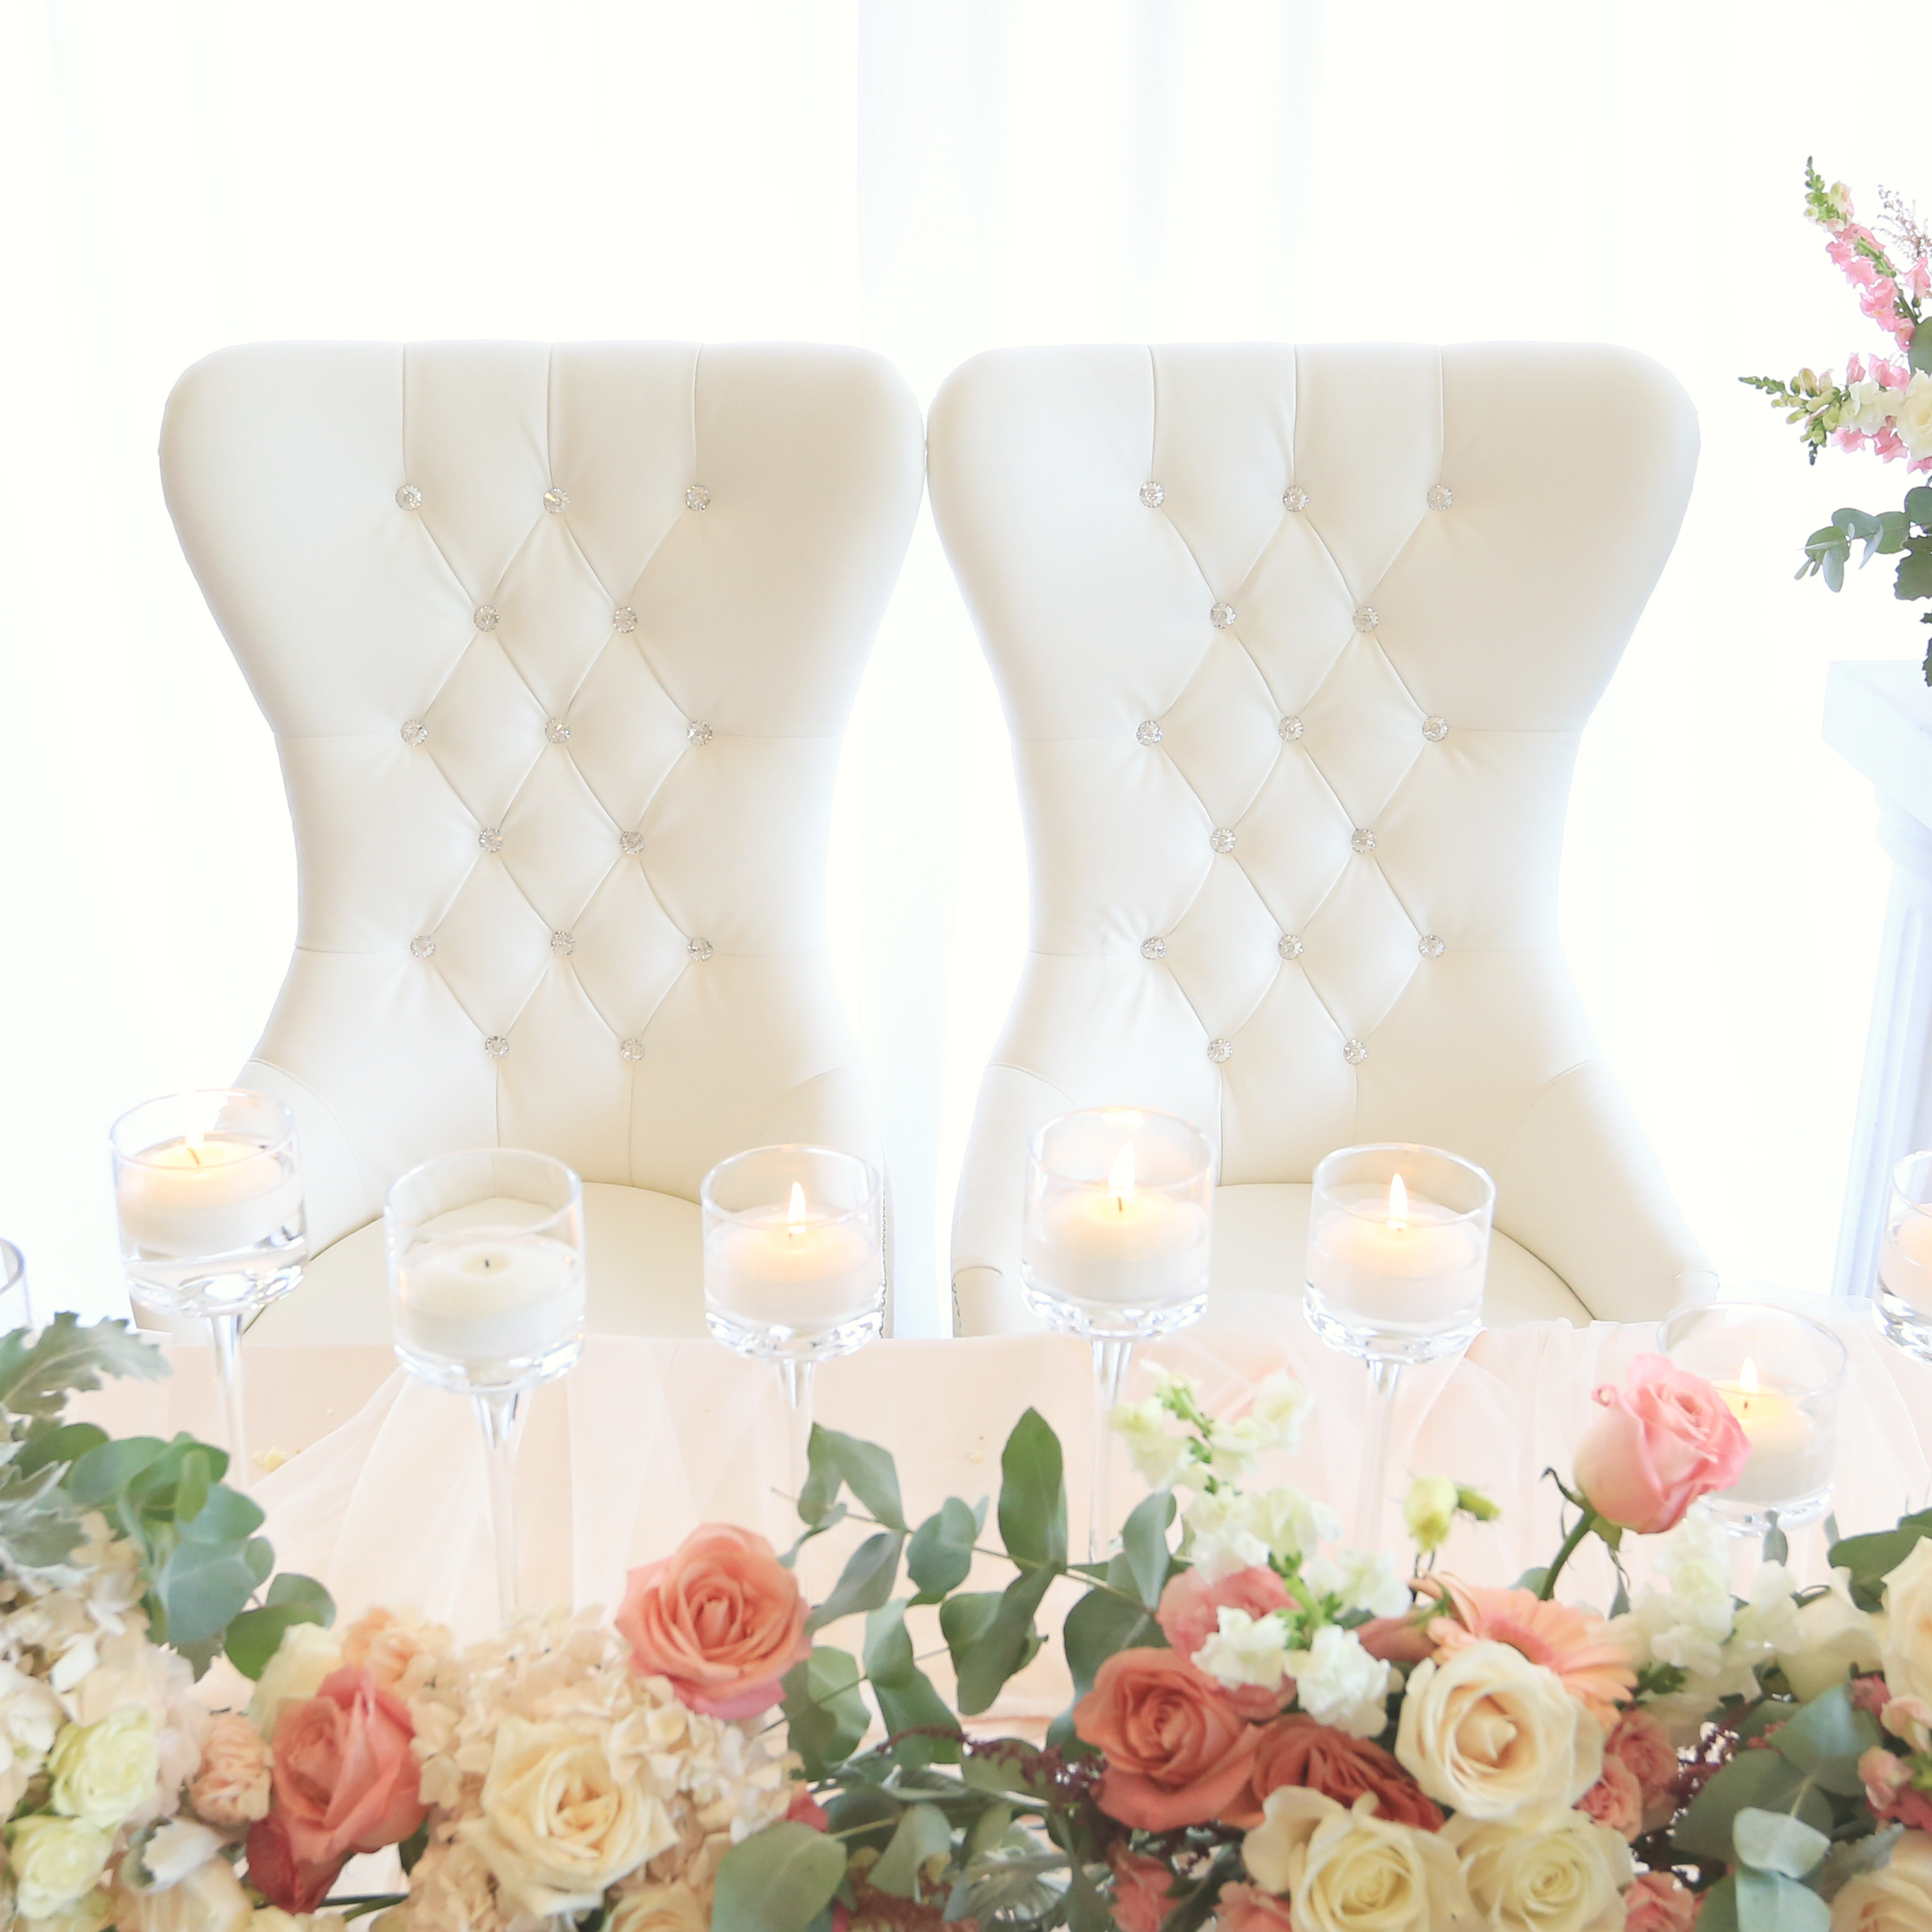 Bride Amp Groom White Chairs King Queen Chairs Rental